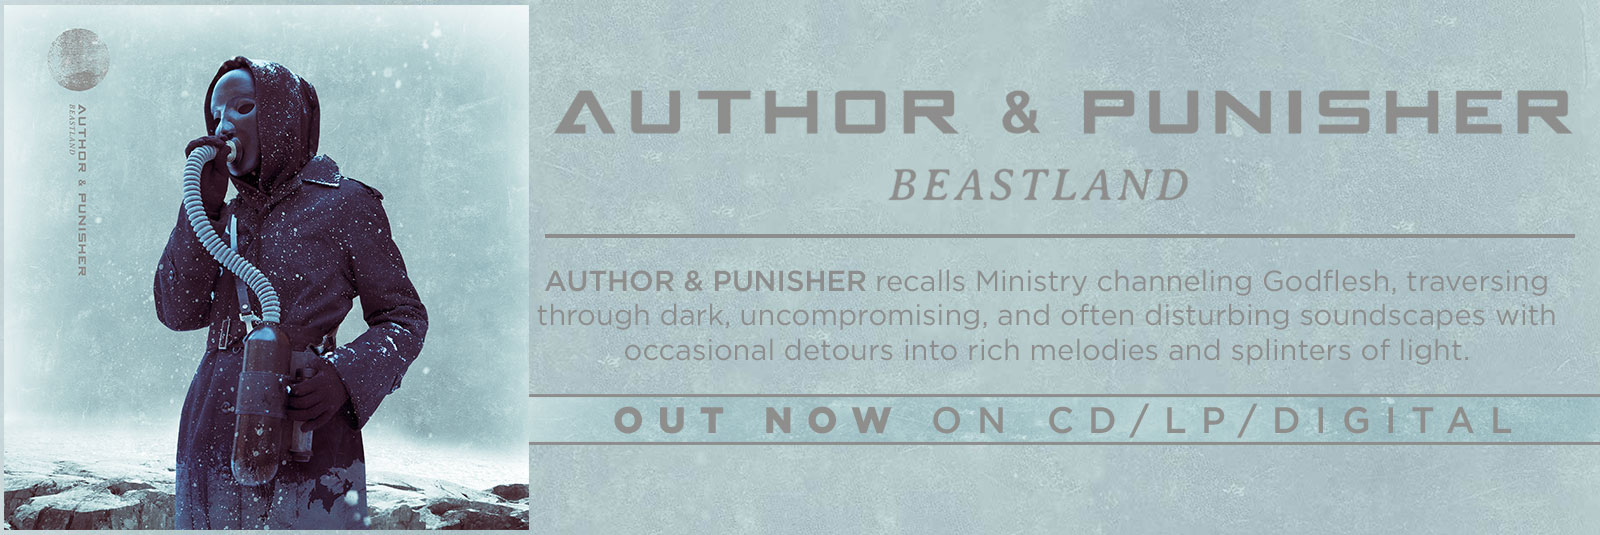 author-&-punisher-beastland-industrial-metal-relapse-out-now